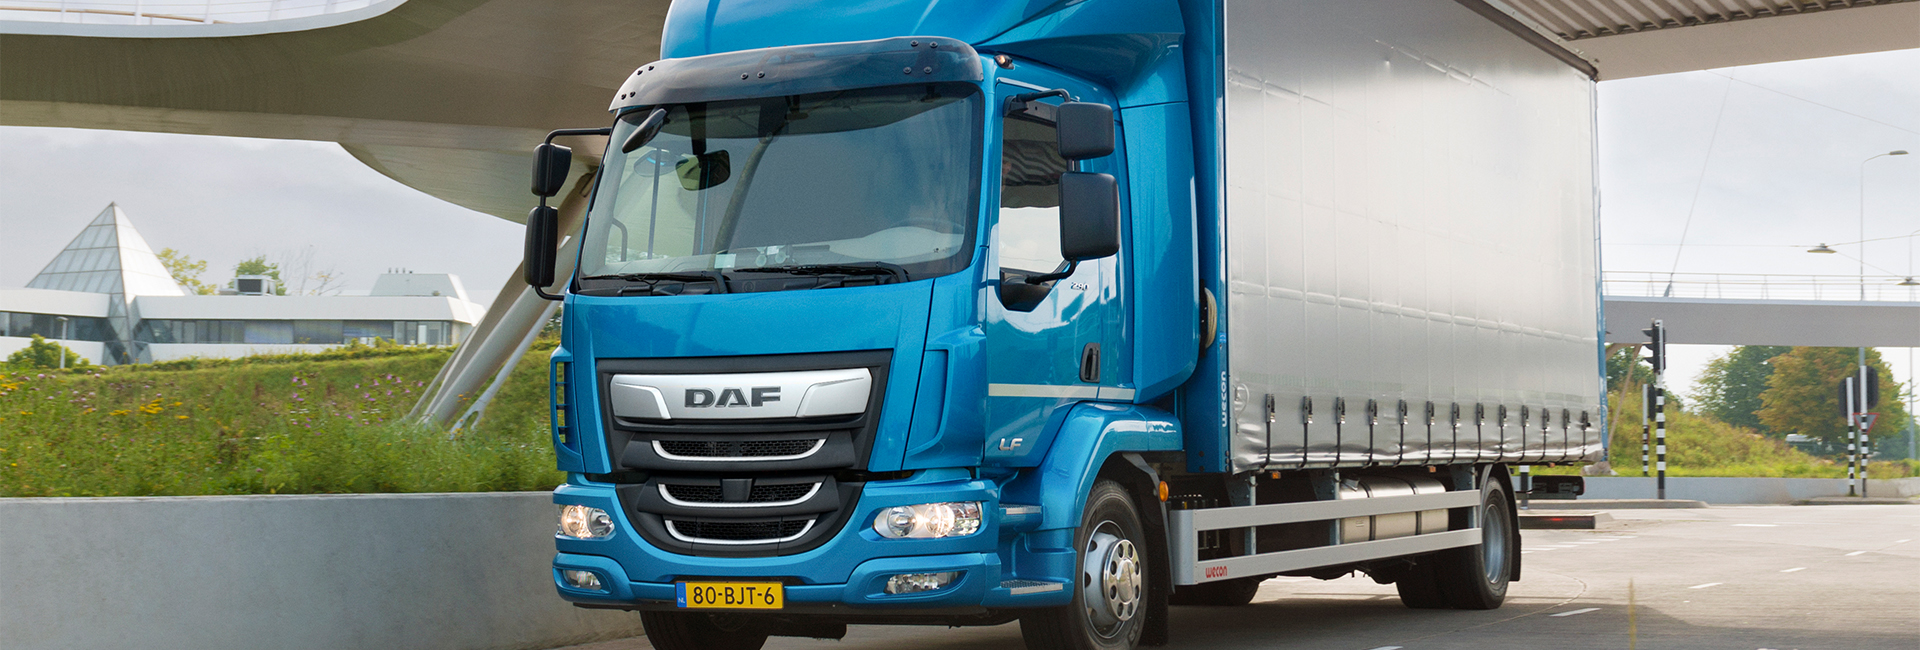 DAF Introduces LF